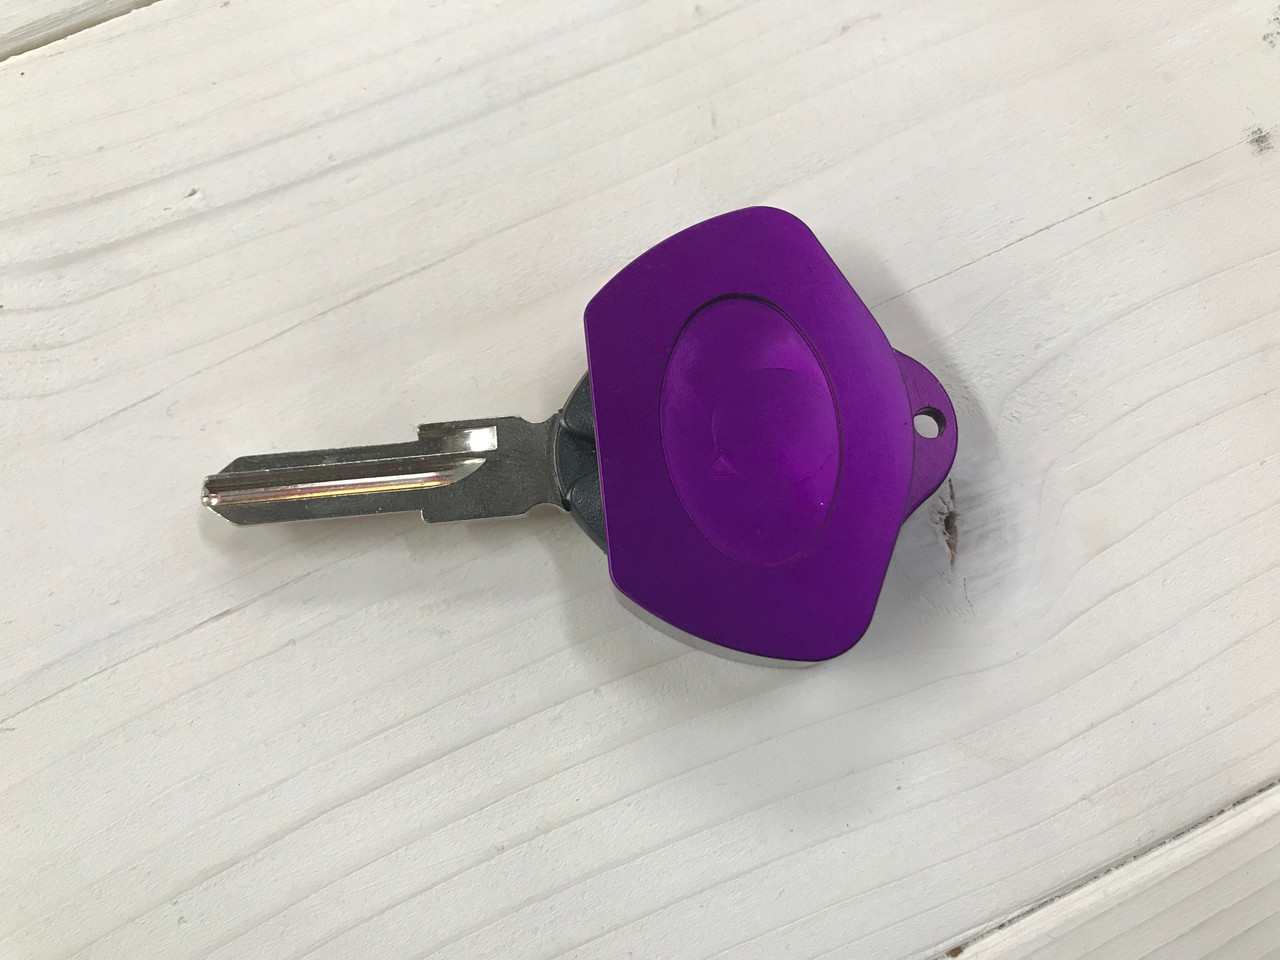 US Spyder Ryder Edition - Spyder Key Holder